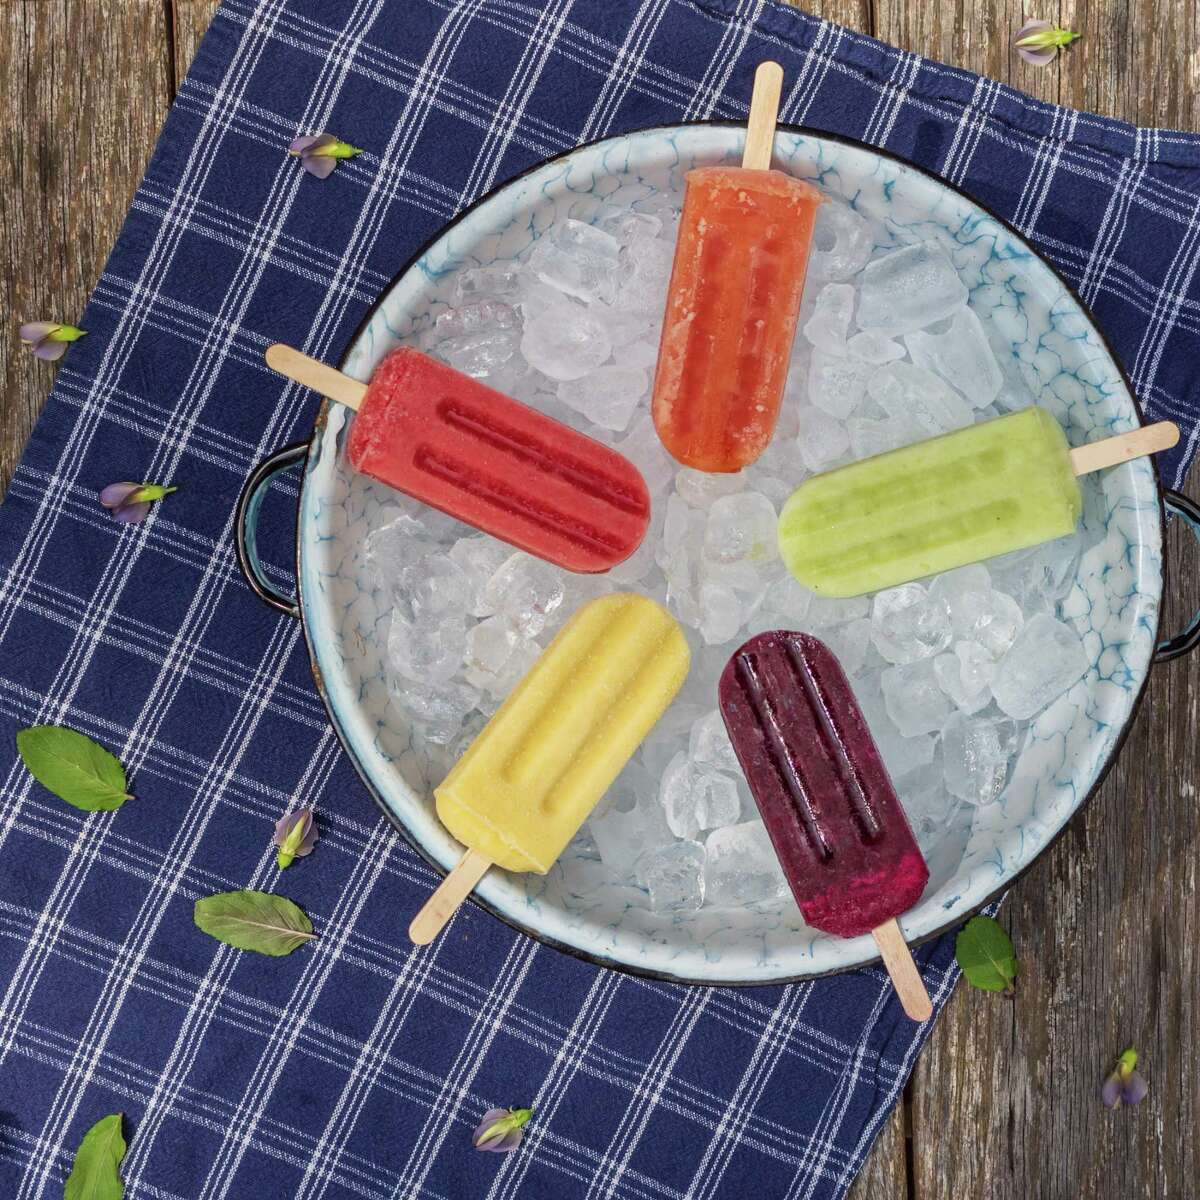 Bees Knees Ice Pops sells their inventive ice pops at farmers markets around Fairfield County.